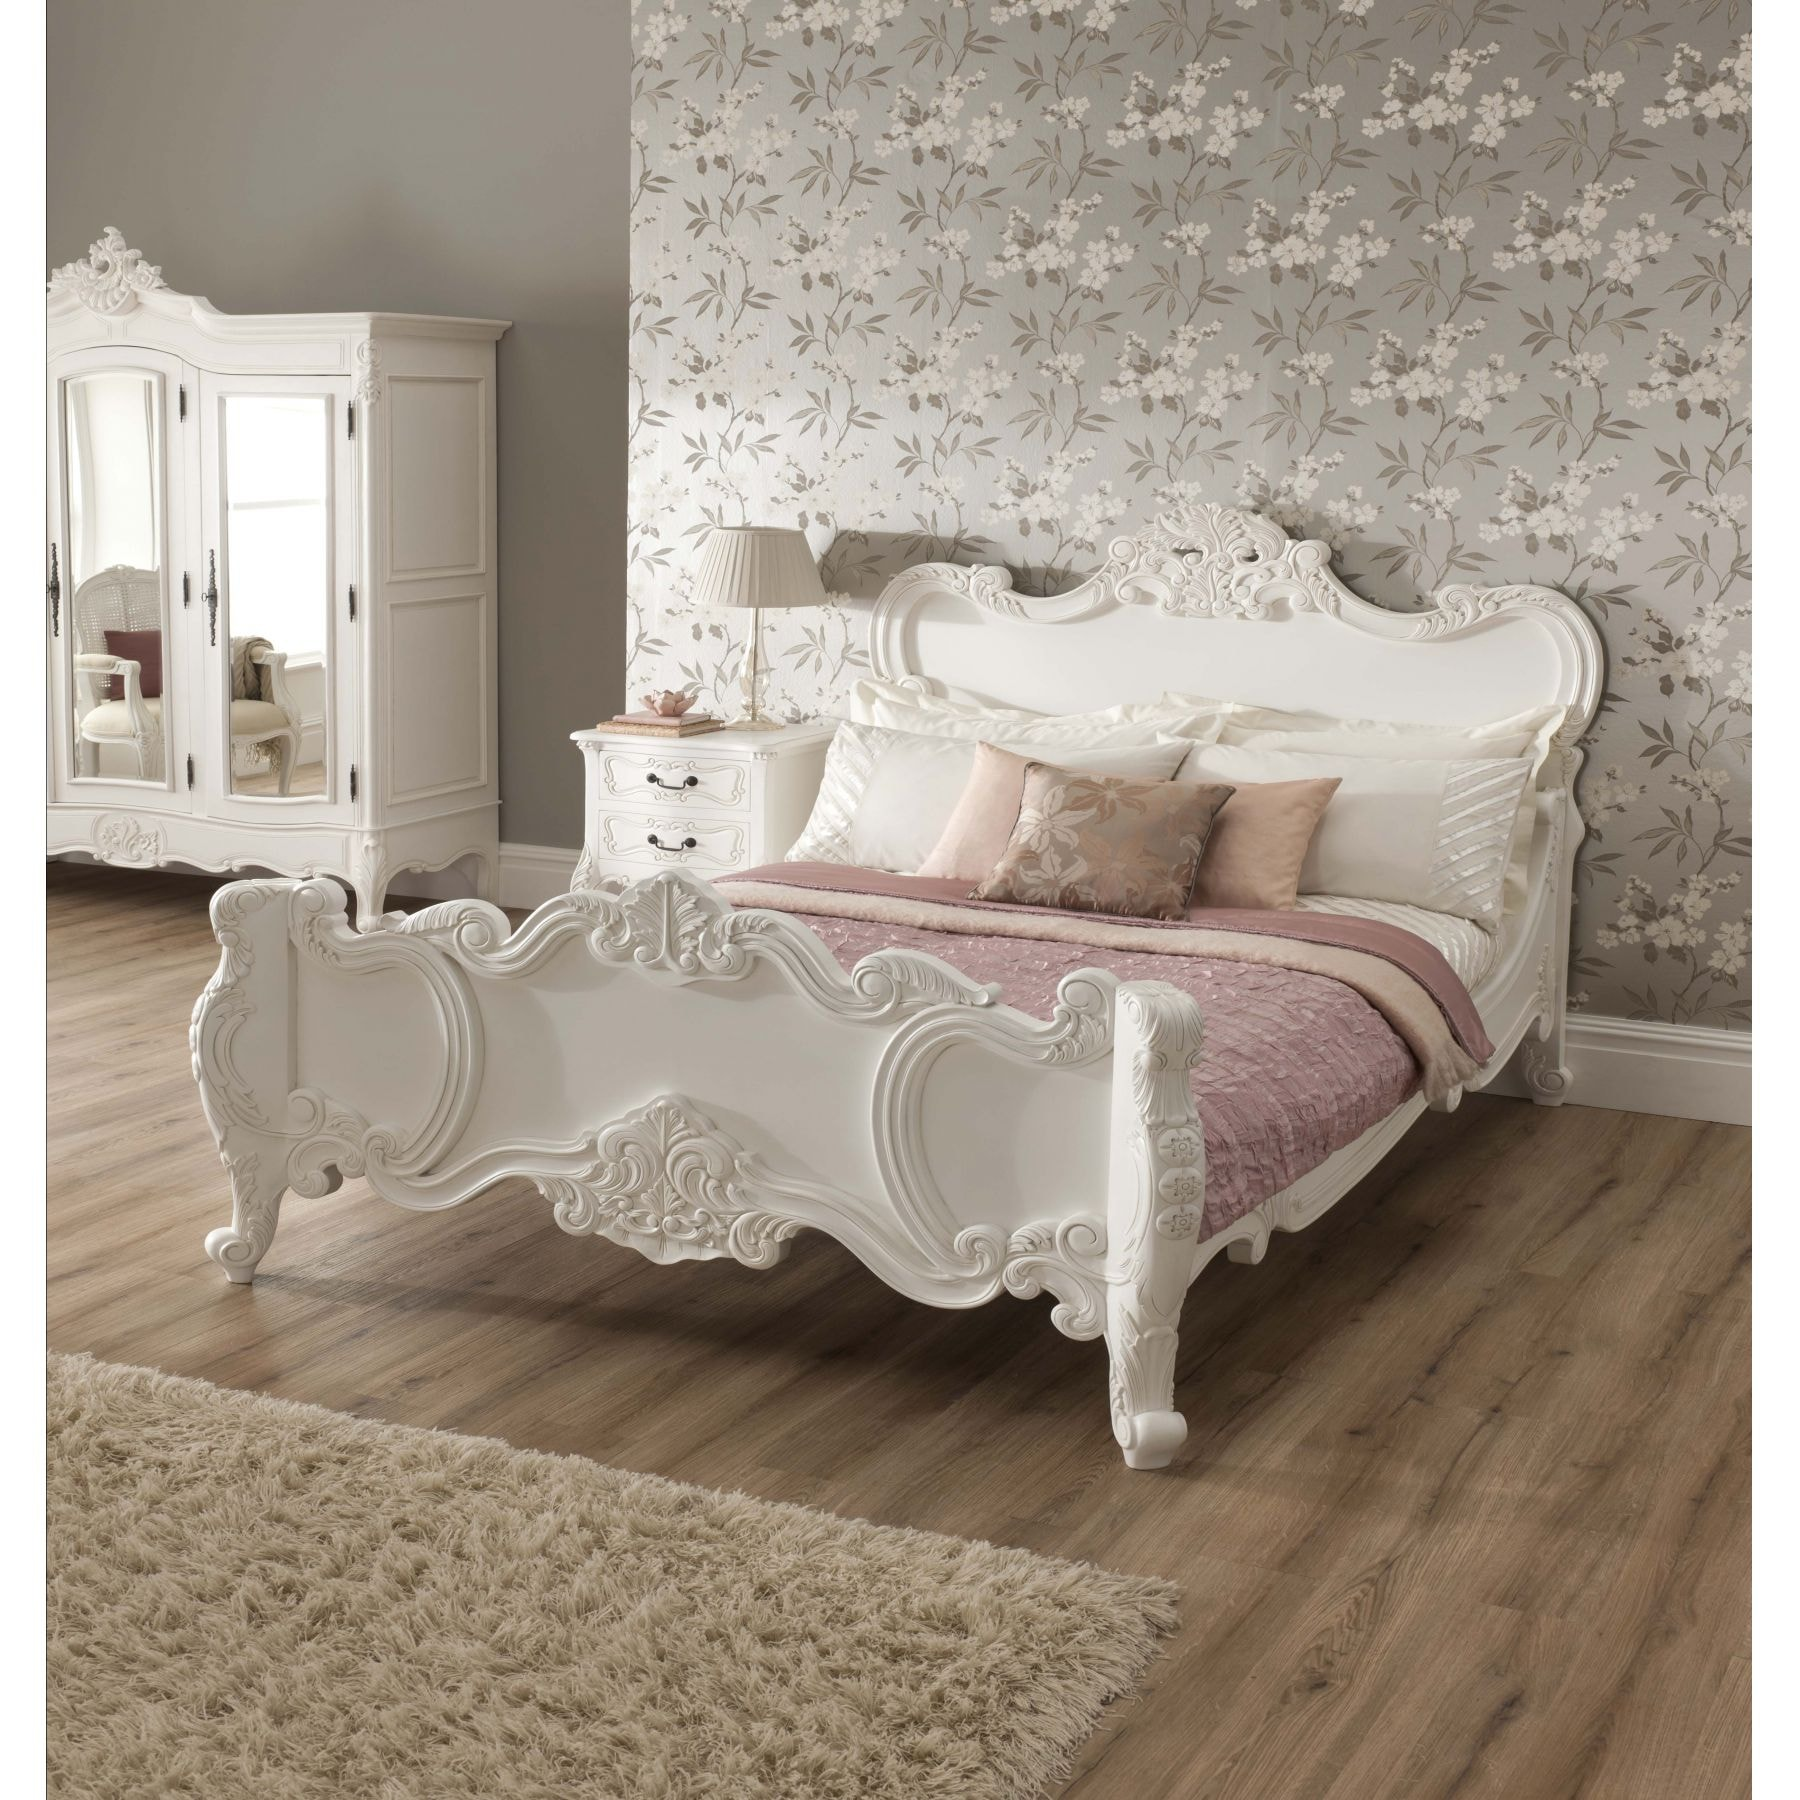 La rochelle shabby chic antique style bed shabby chic for French style bedroom furniture